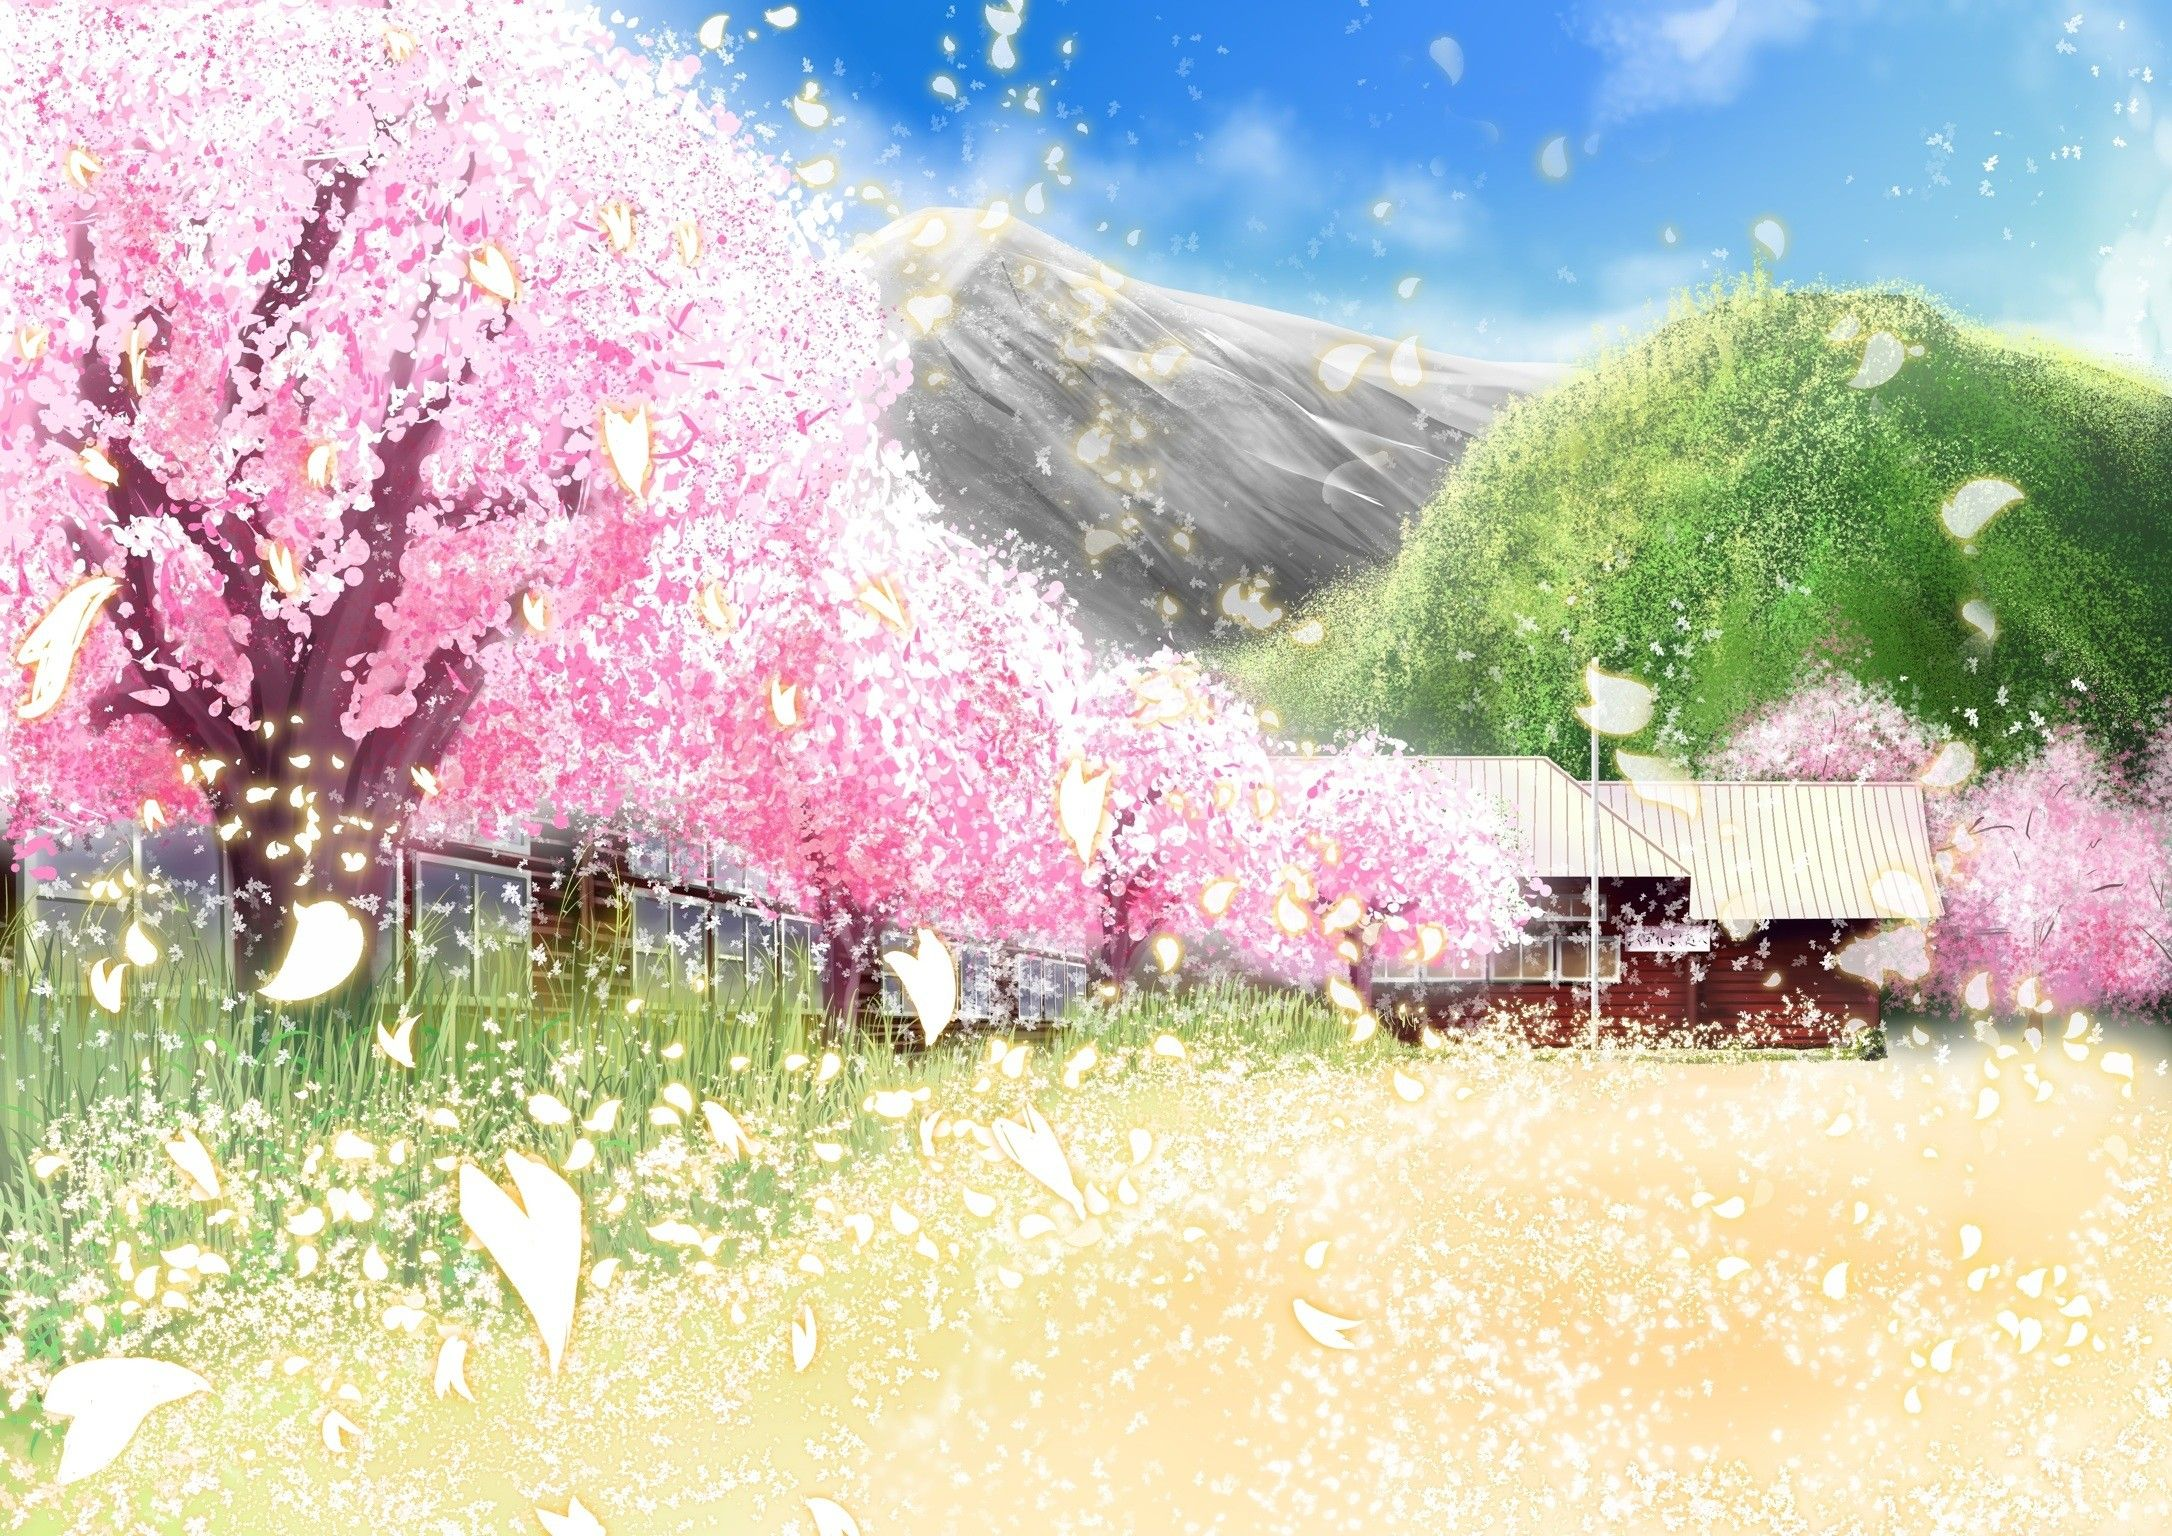 Falling Cherry Blossom Petals No 3 With Tree Hd Animation Green Screen Effect Overlay Yo Greenscreen Green Screen Video Backgrounds Cherry Blossom Petals